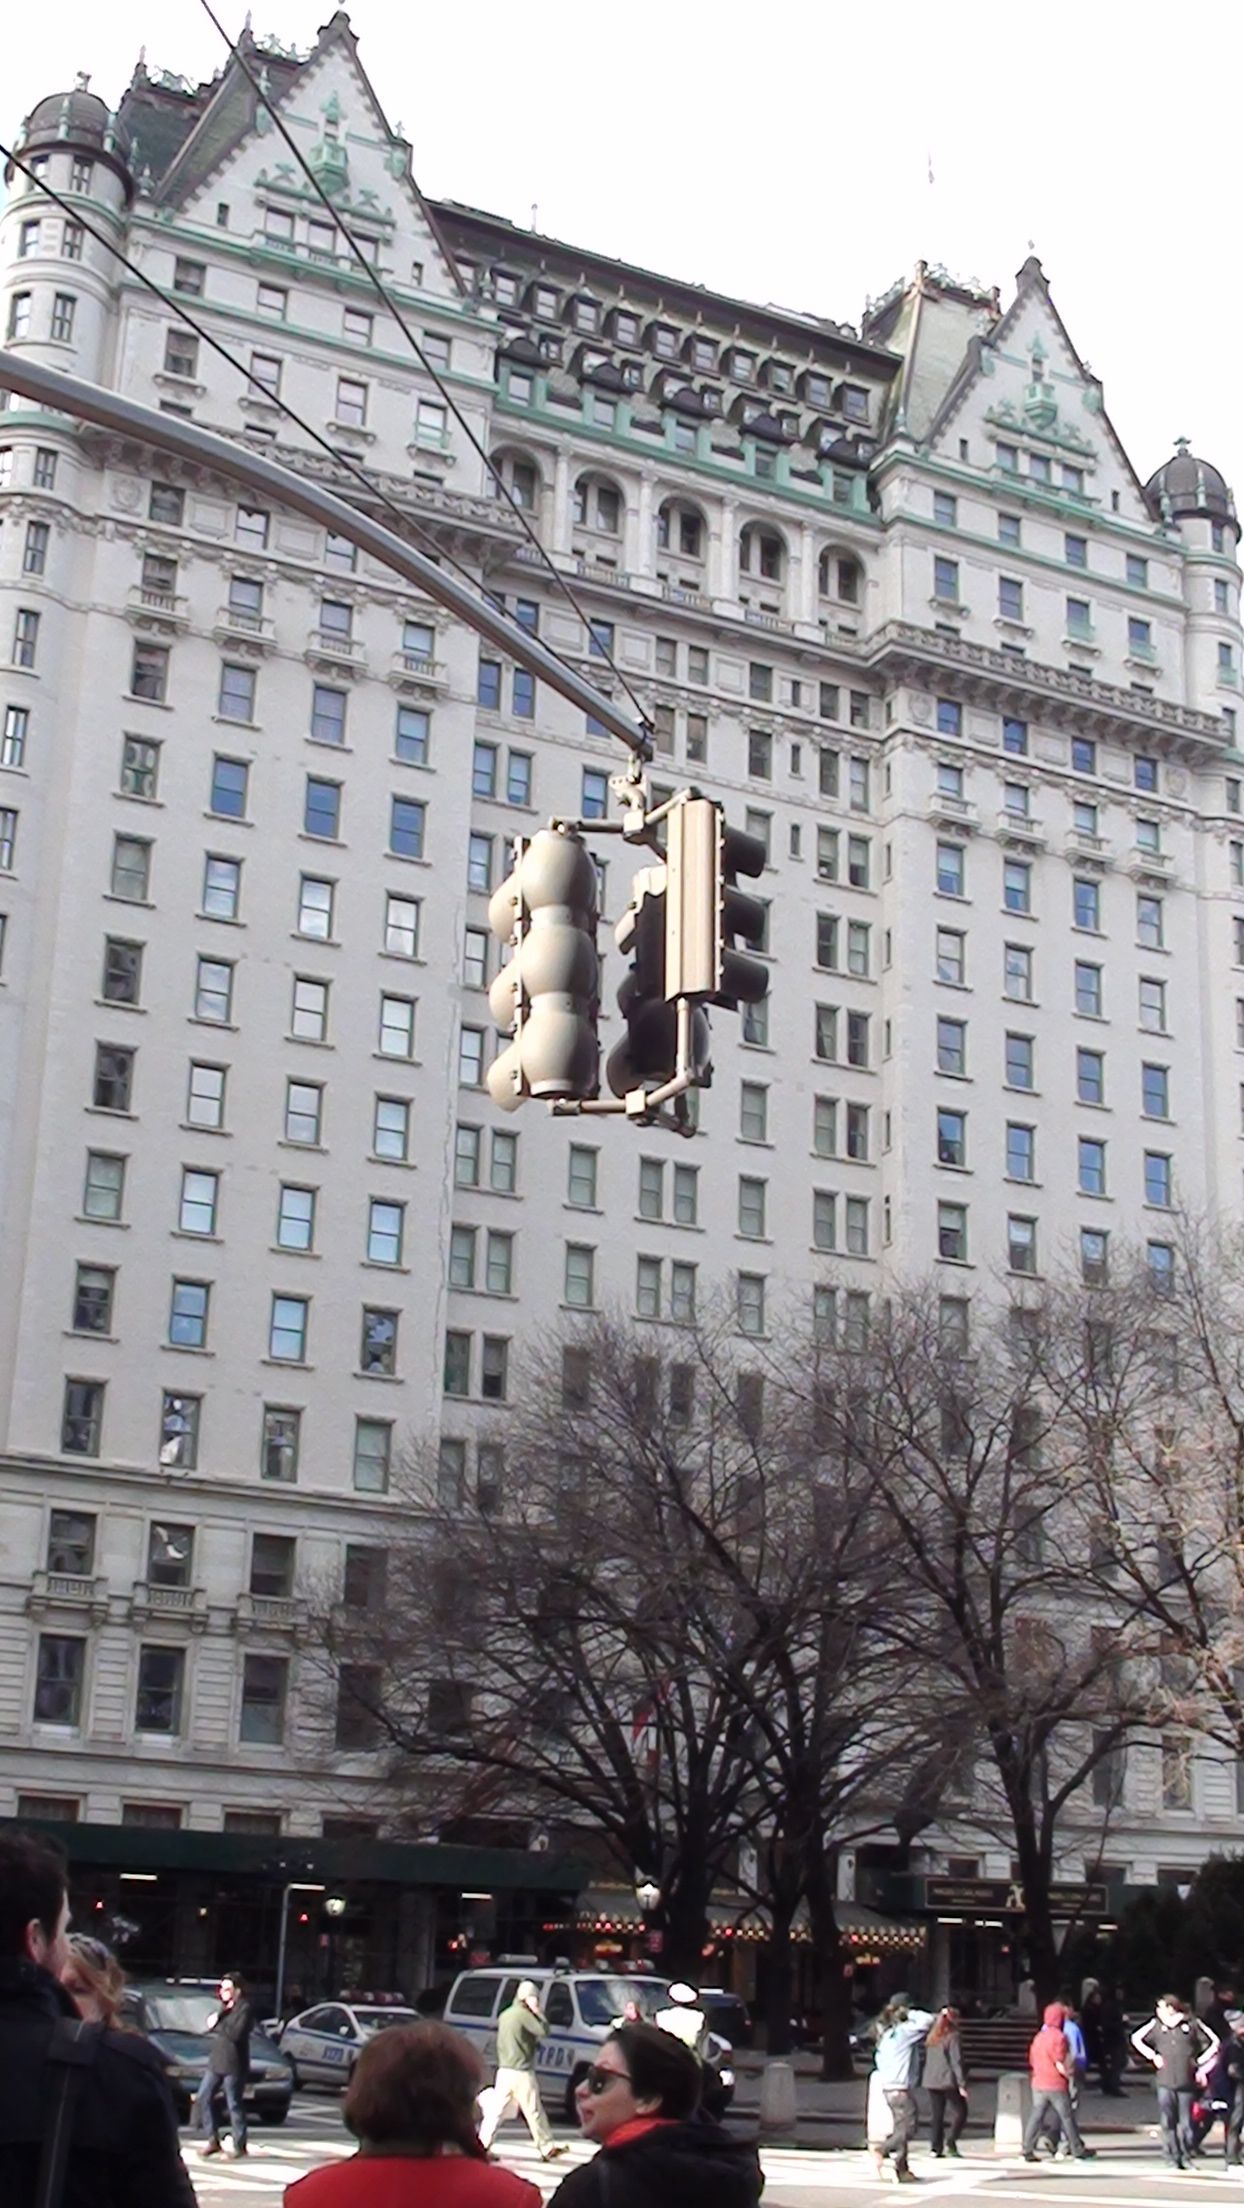 PLaza Hotel In NYC! Where Home Alone 2 Was Filmed! Best